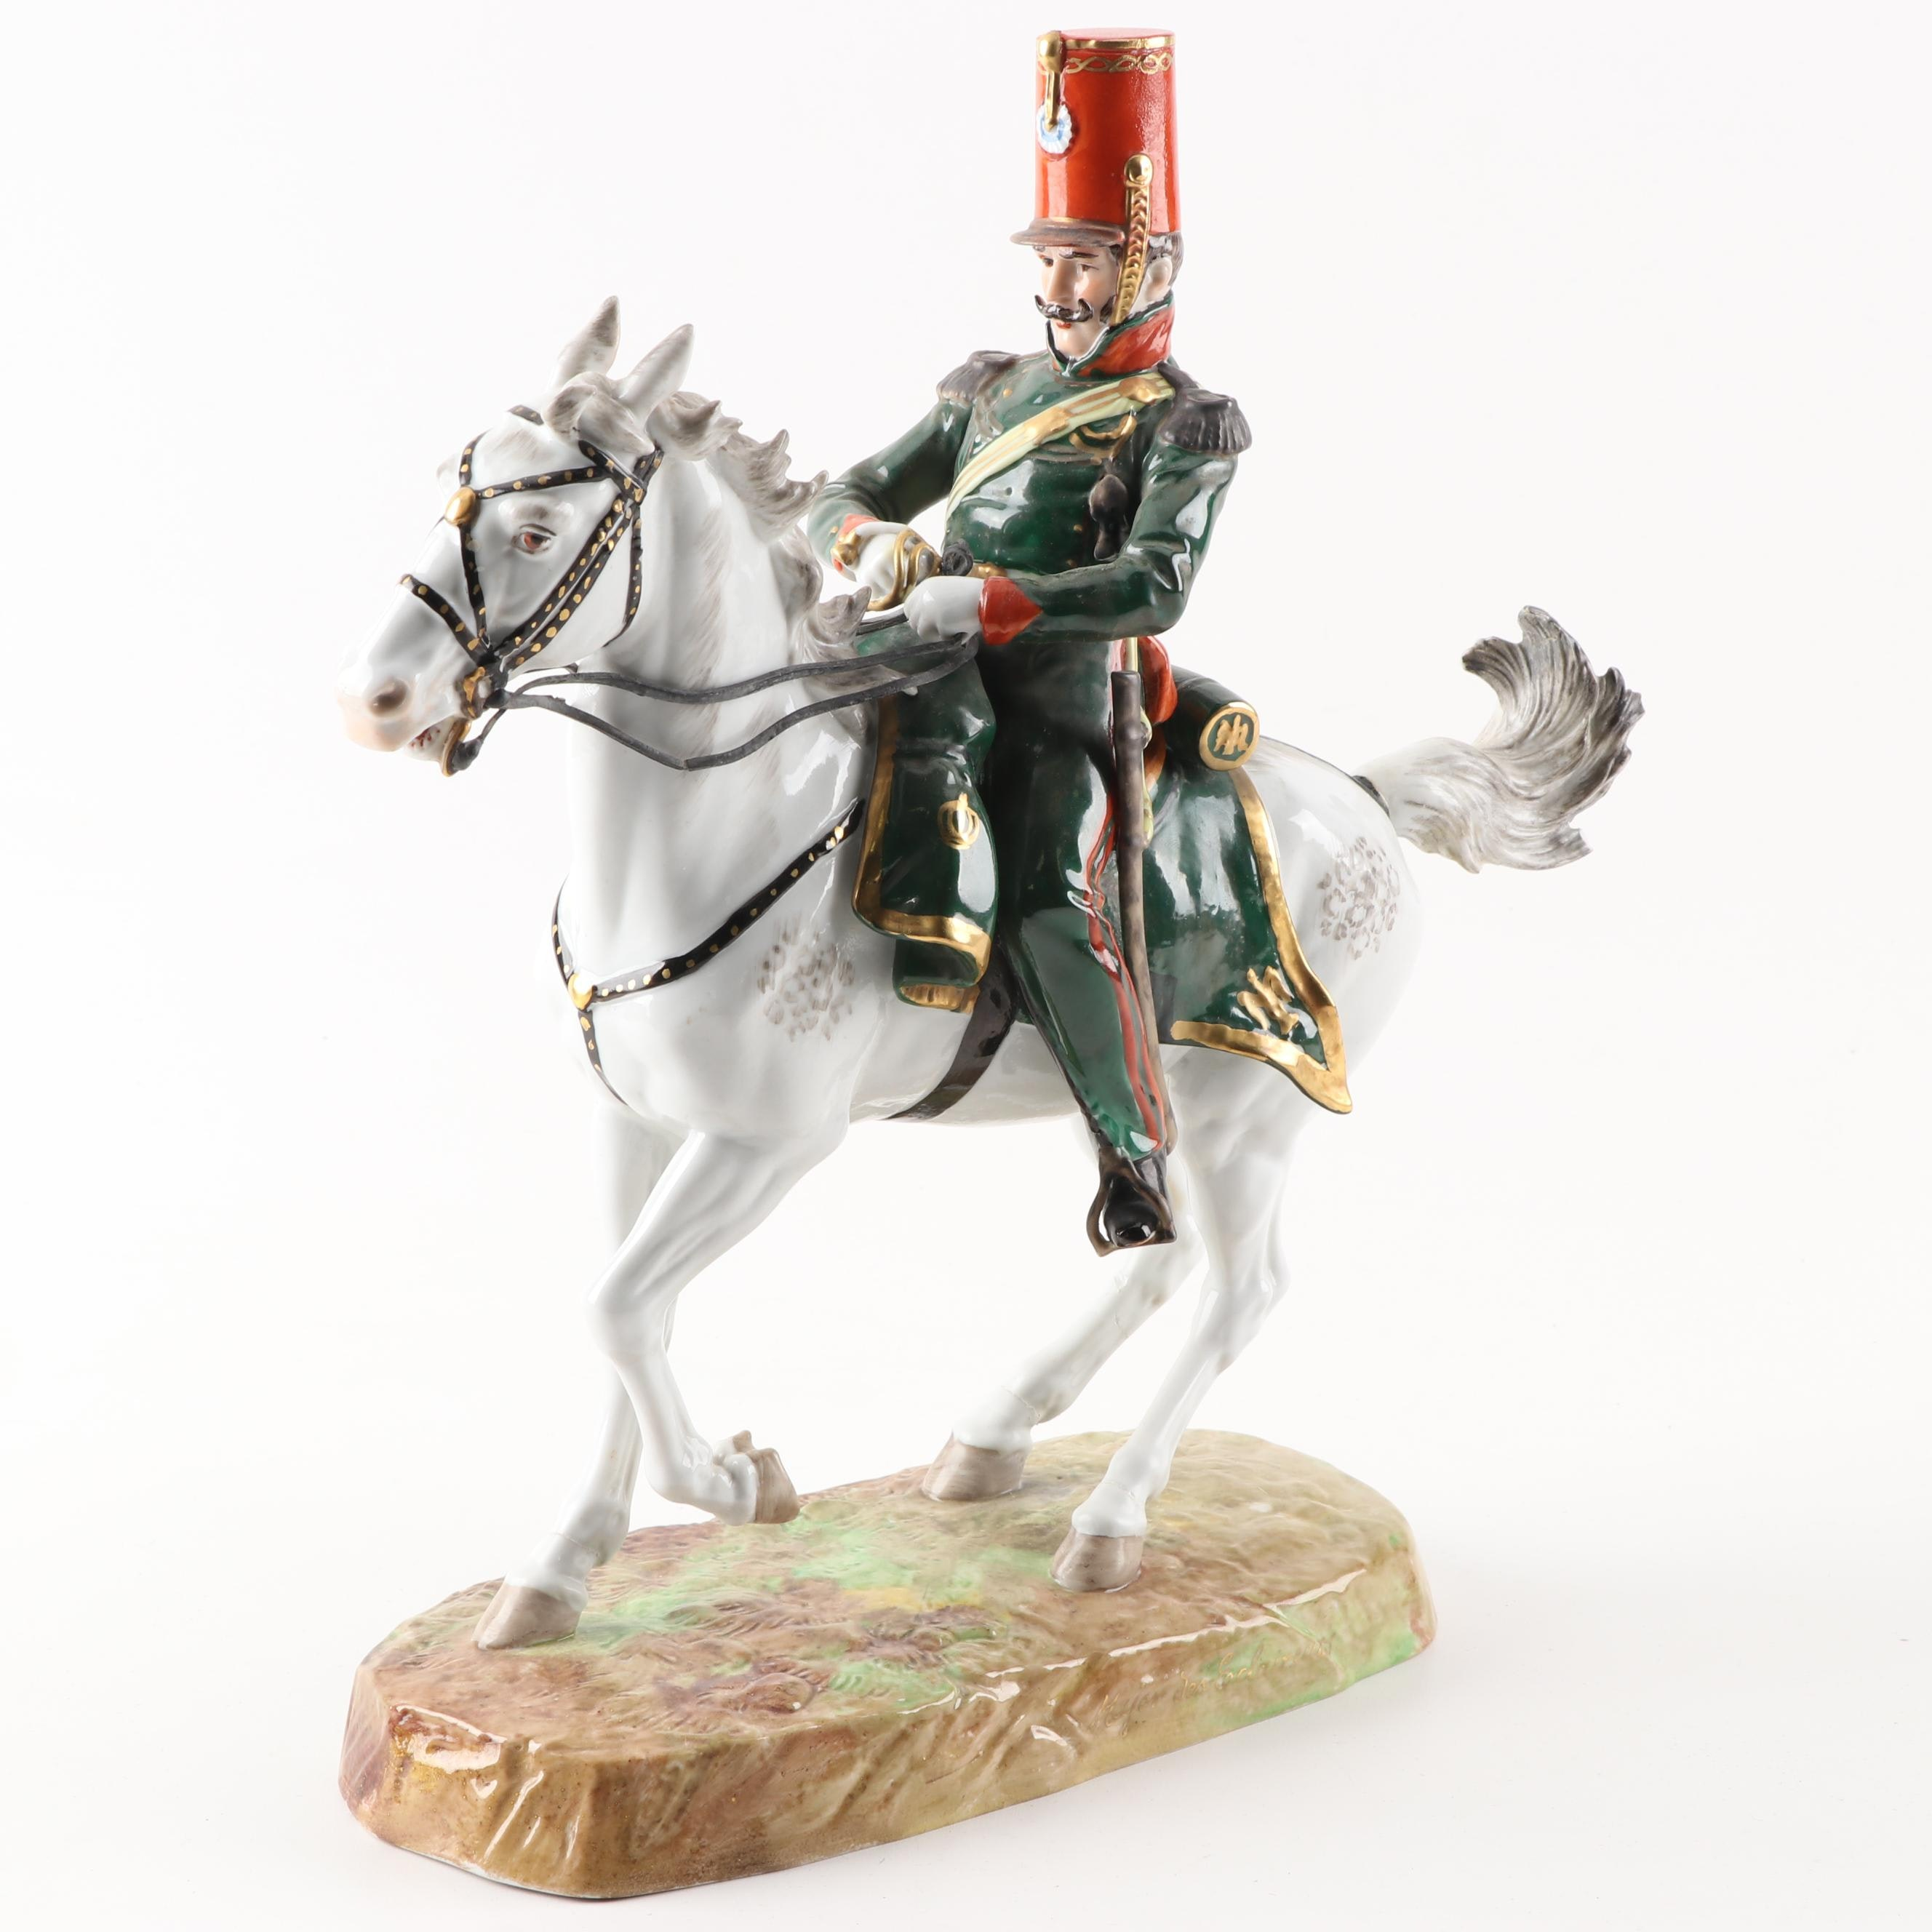 Dresden Porcelain Major Des Eclaireurs Figurine